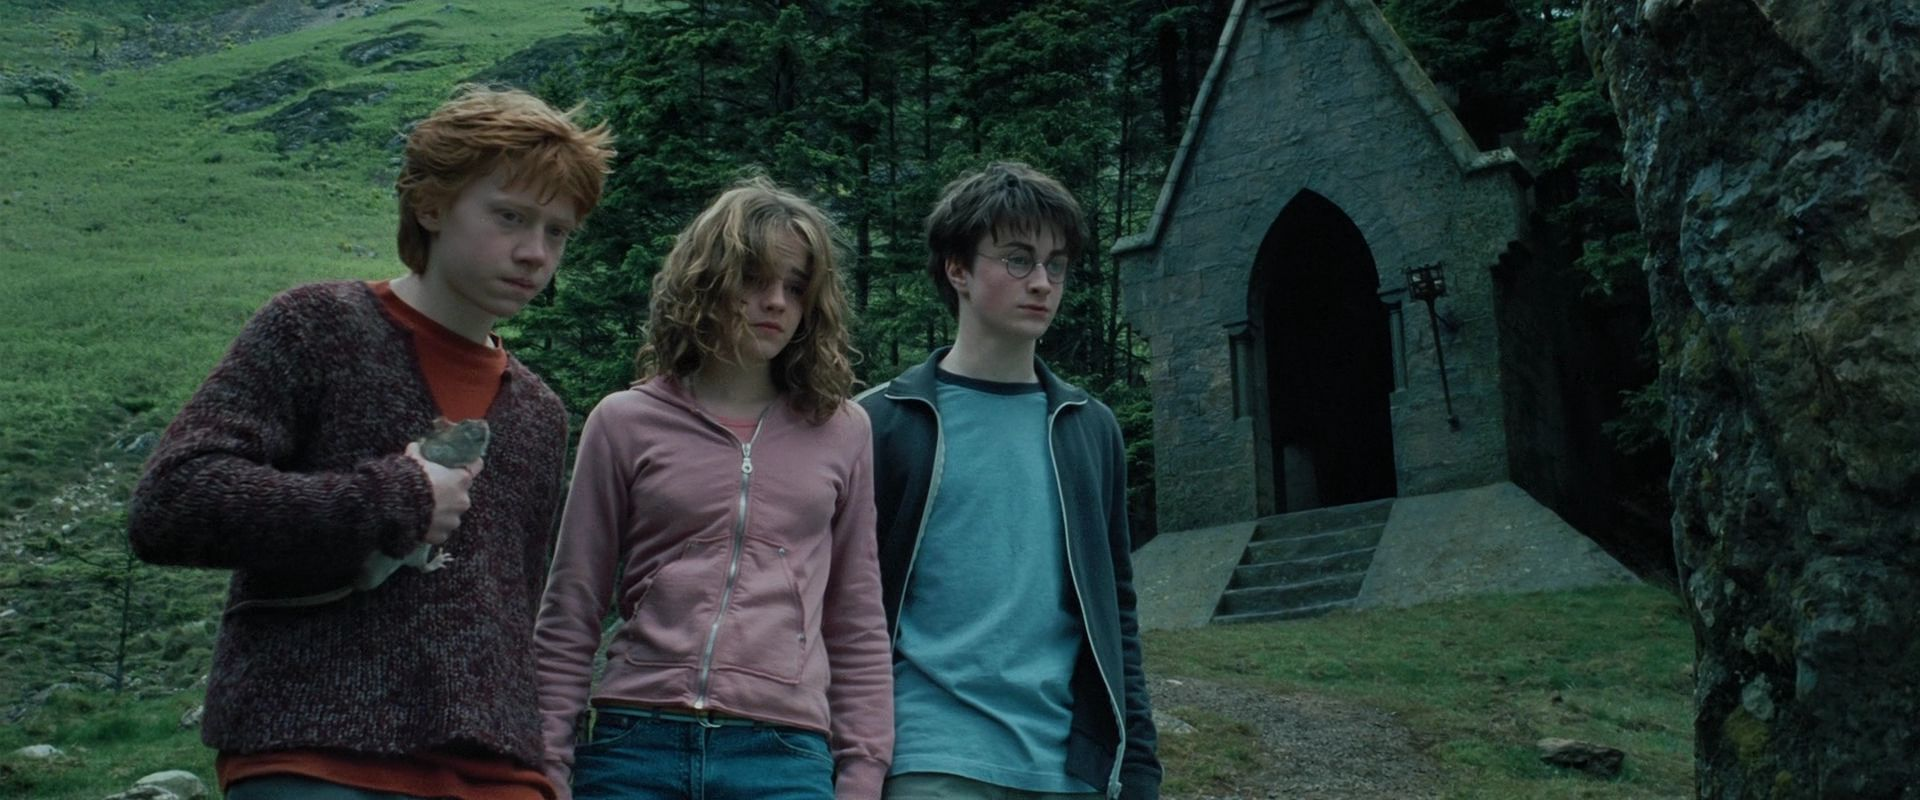 Resultado de imagem para harry potter and the prisoner of azkaban